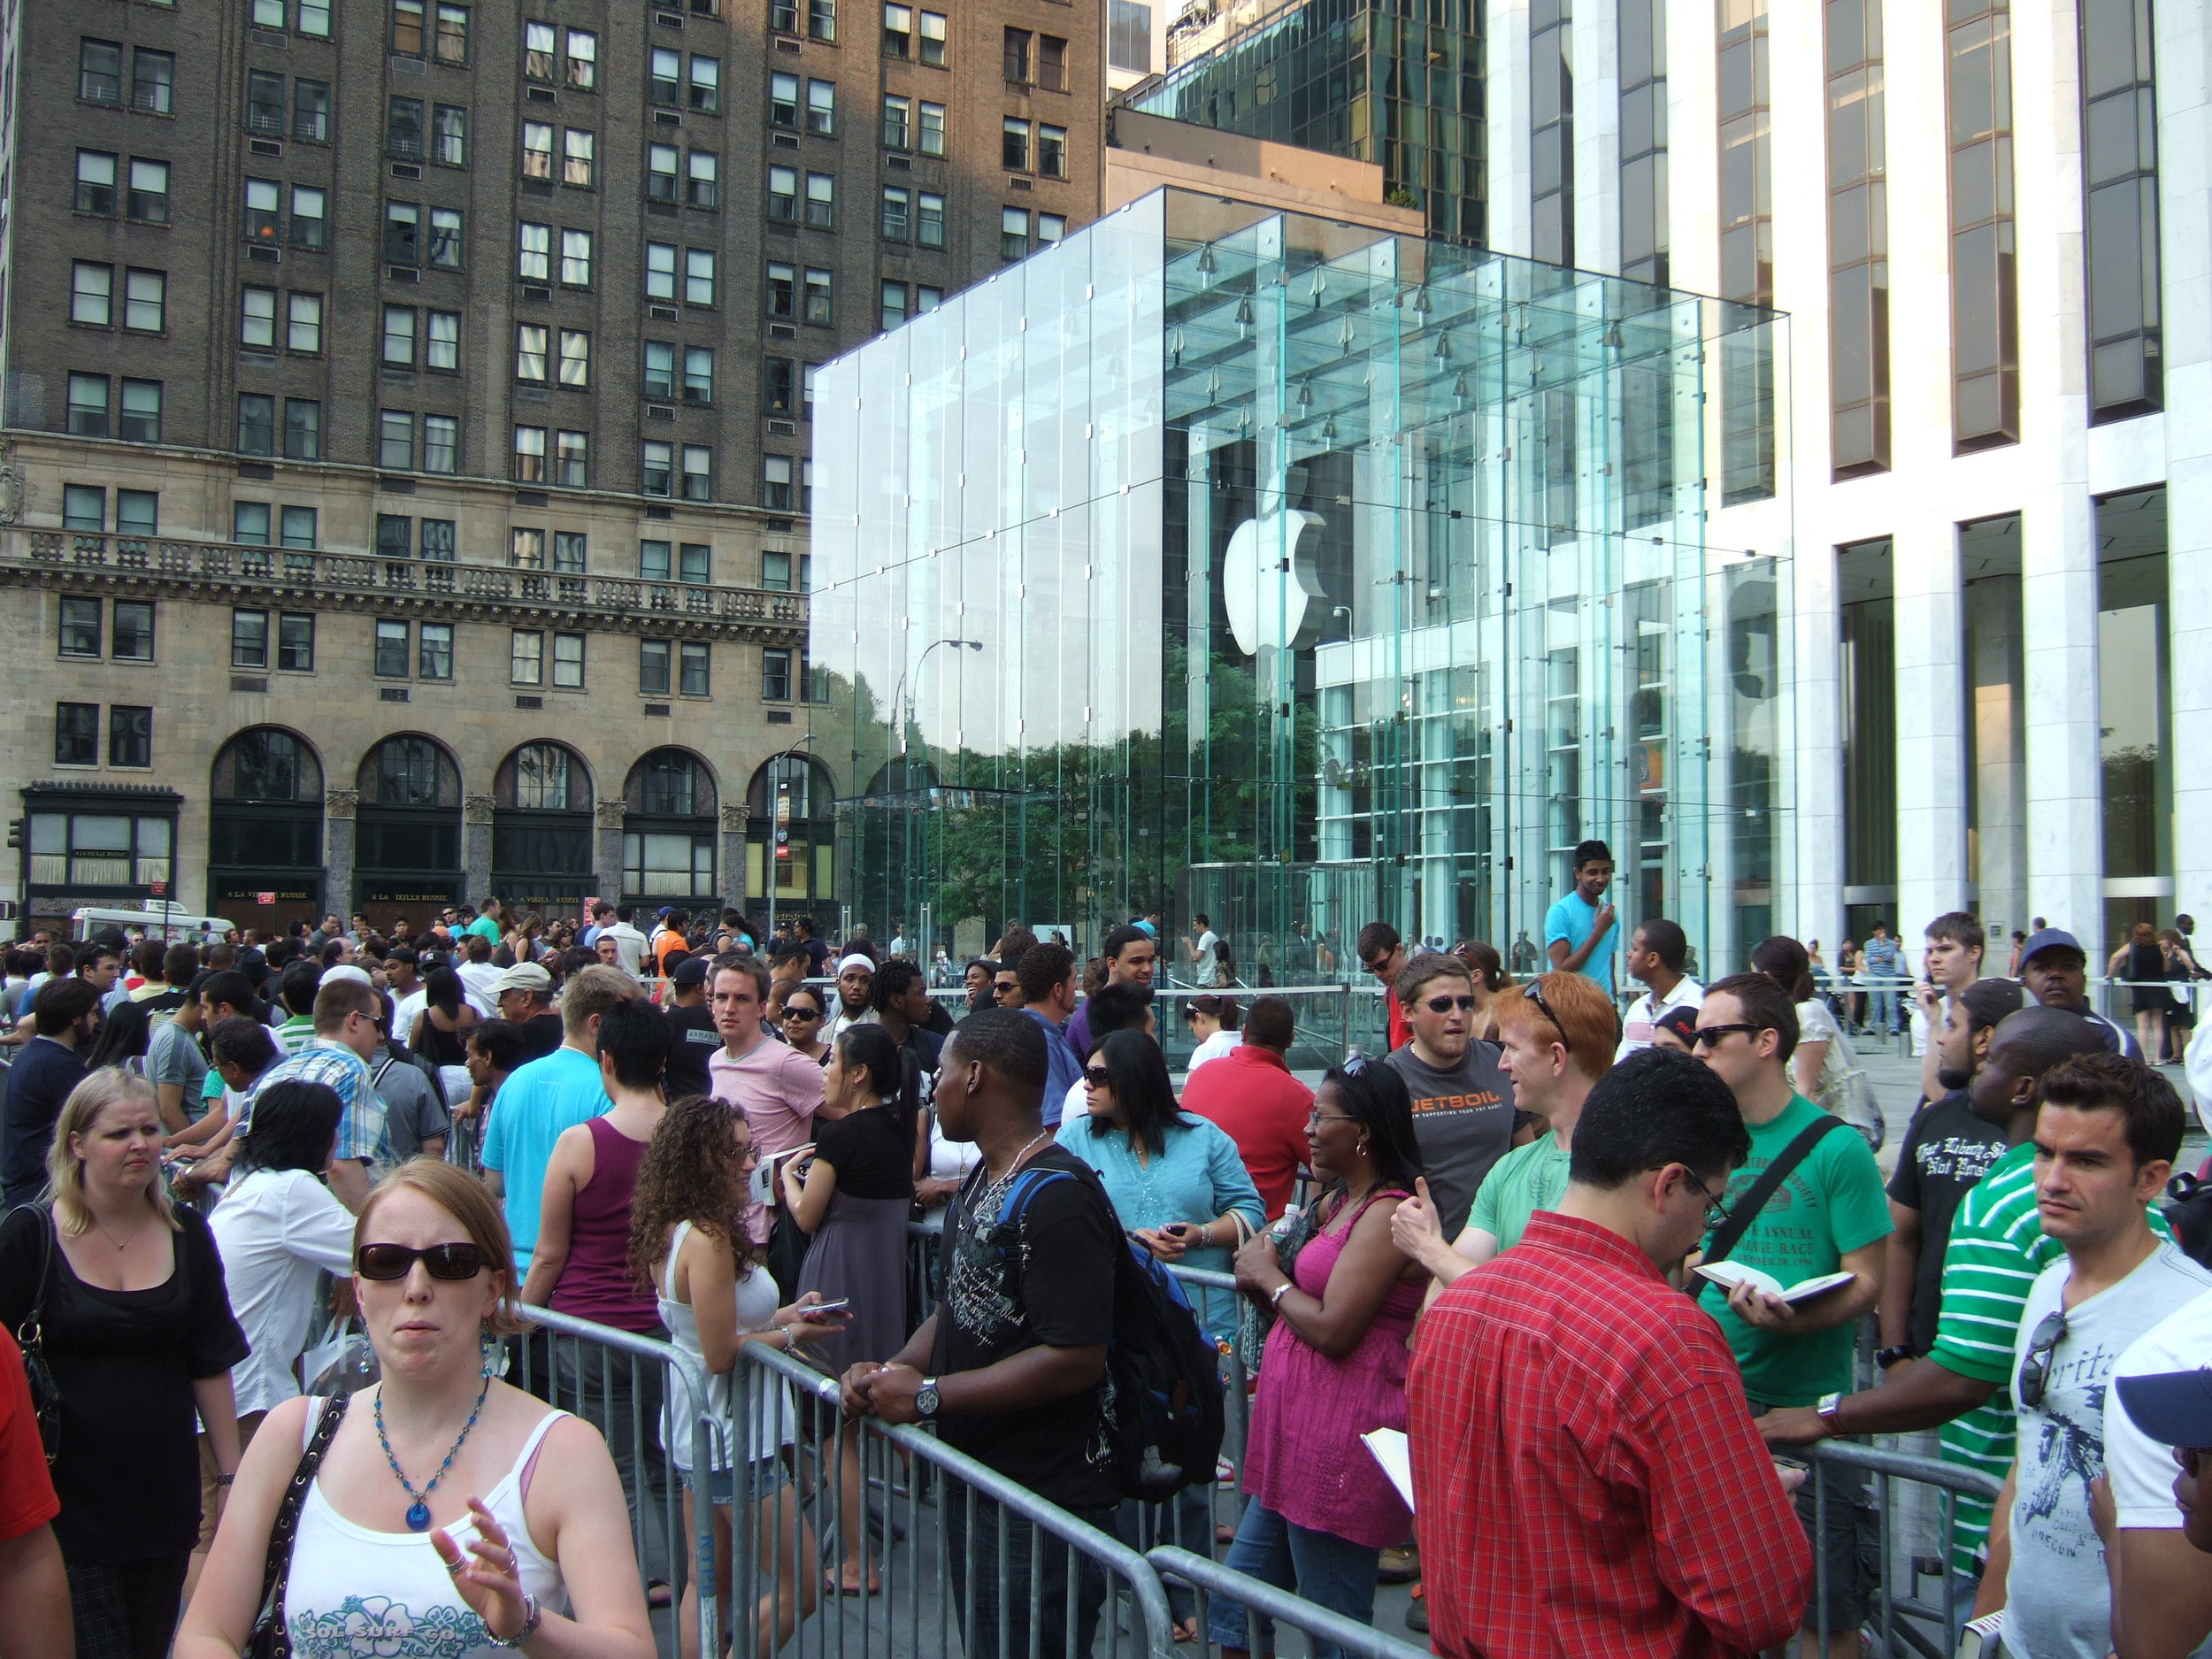 Customers wait in line for a new Apple product. Photo:  Rob DiCaterino